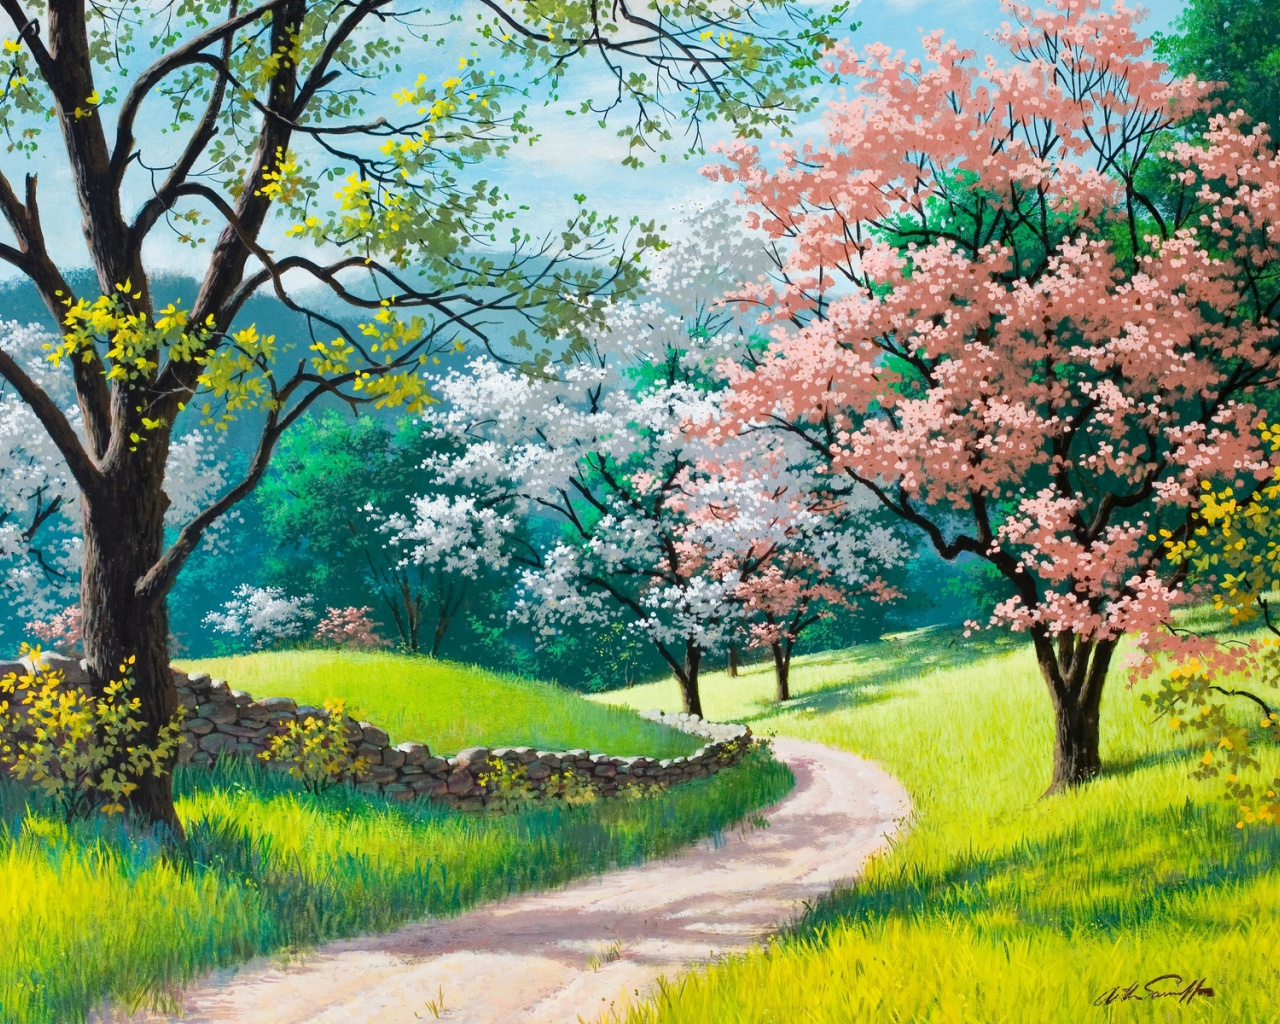 1280x1024 spring wallpaper: 1280x1024 Spring Trees Path Grass Fences Desktop PC And